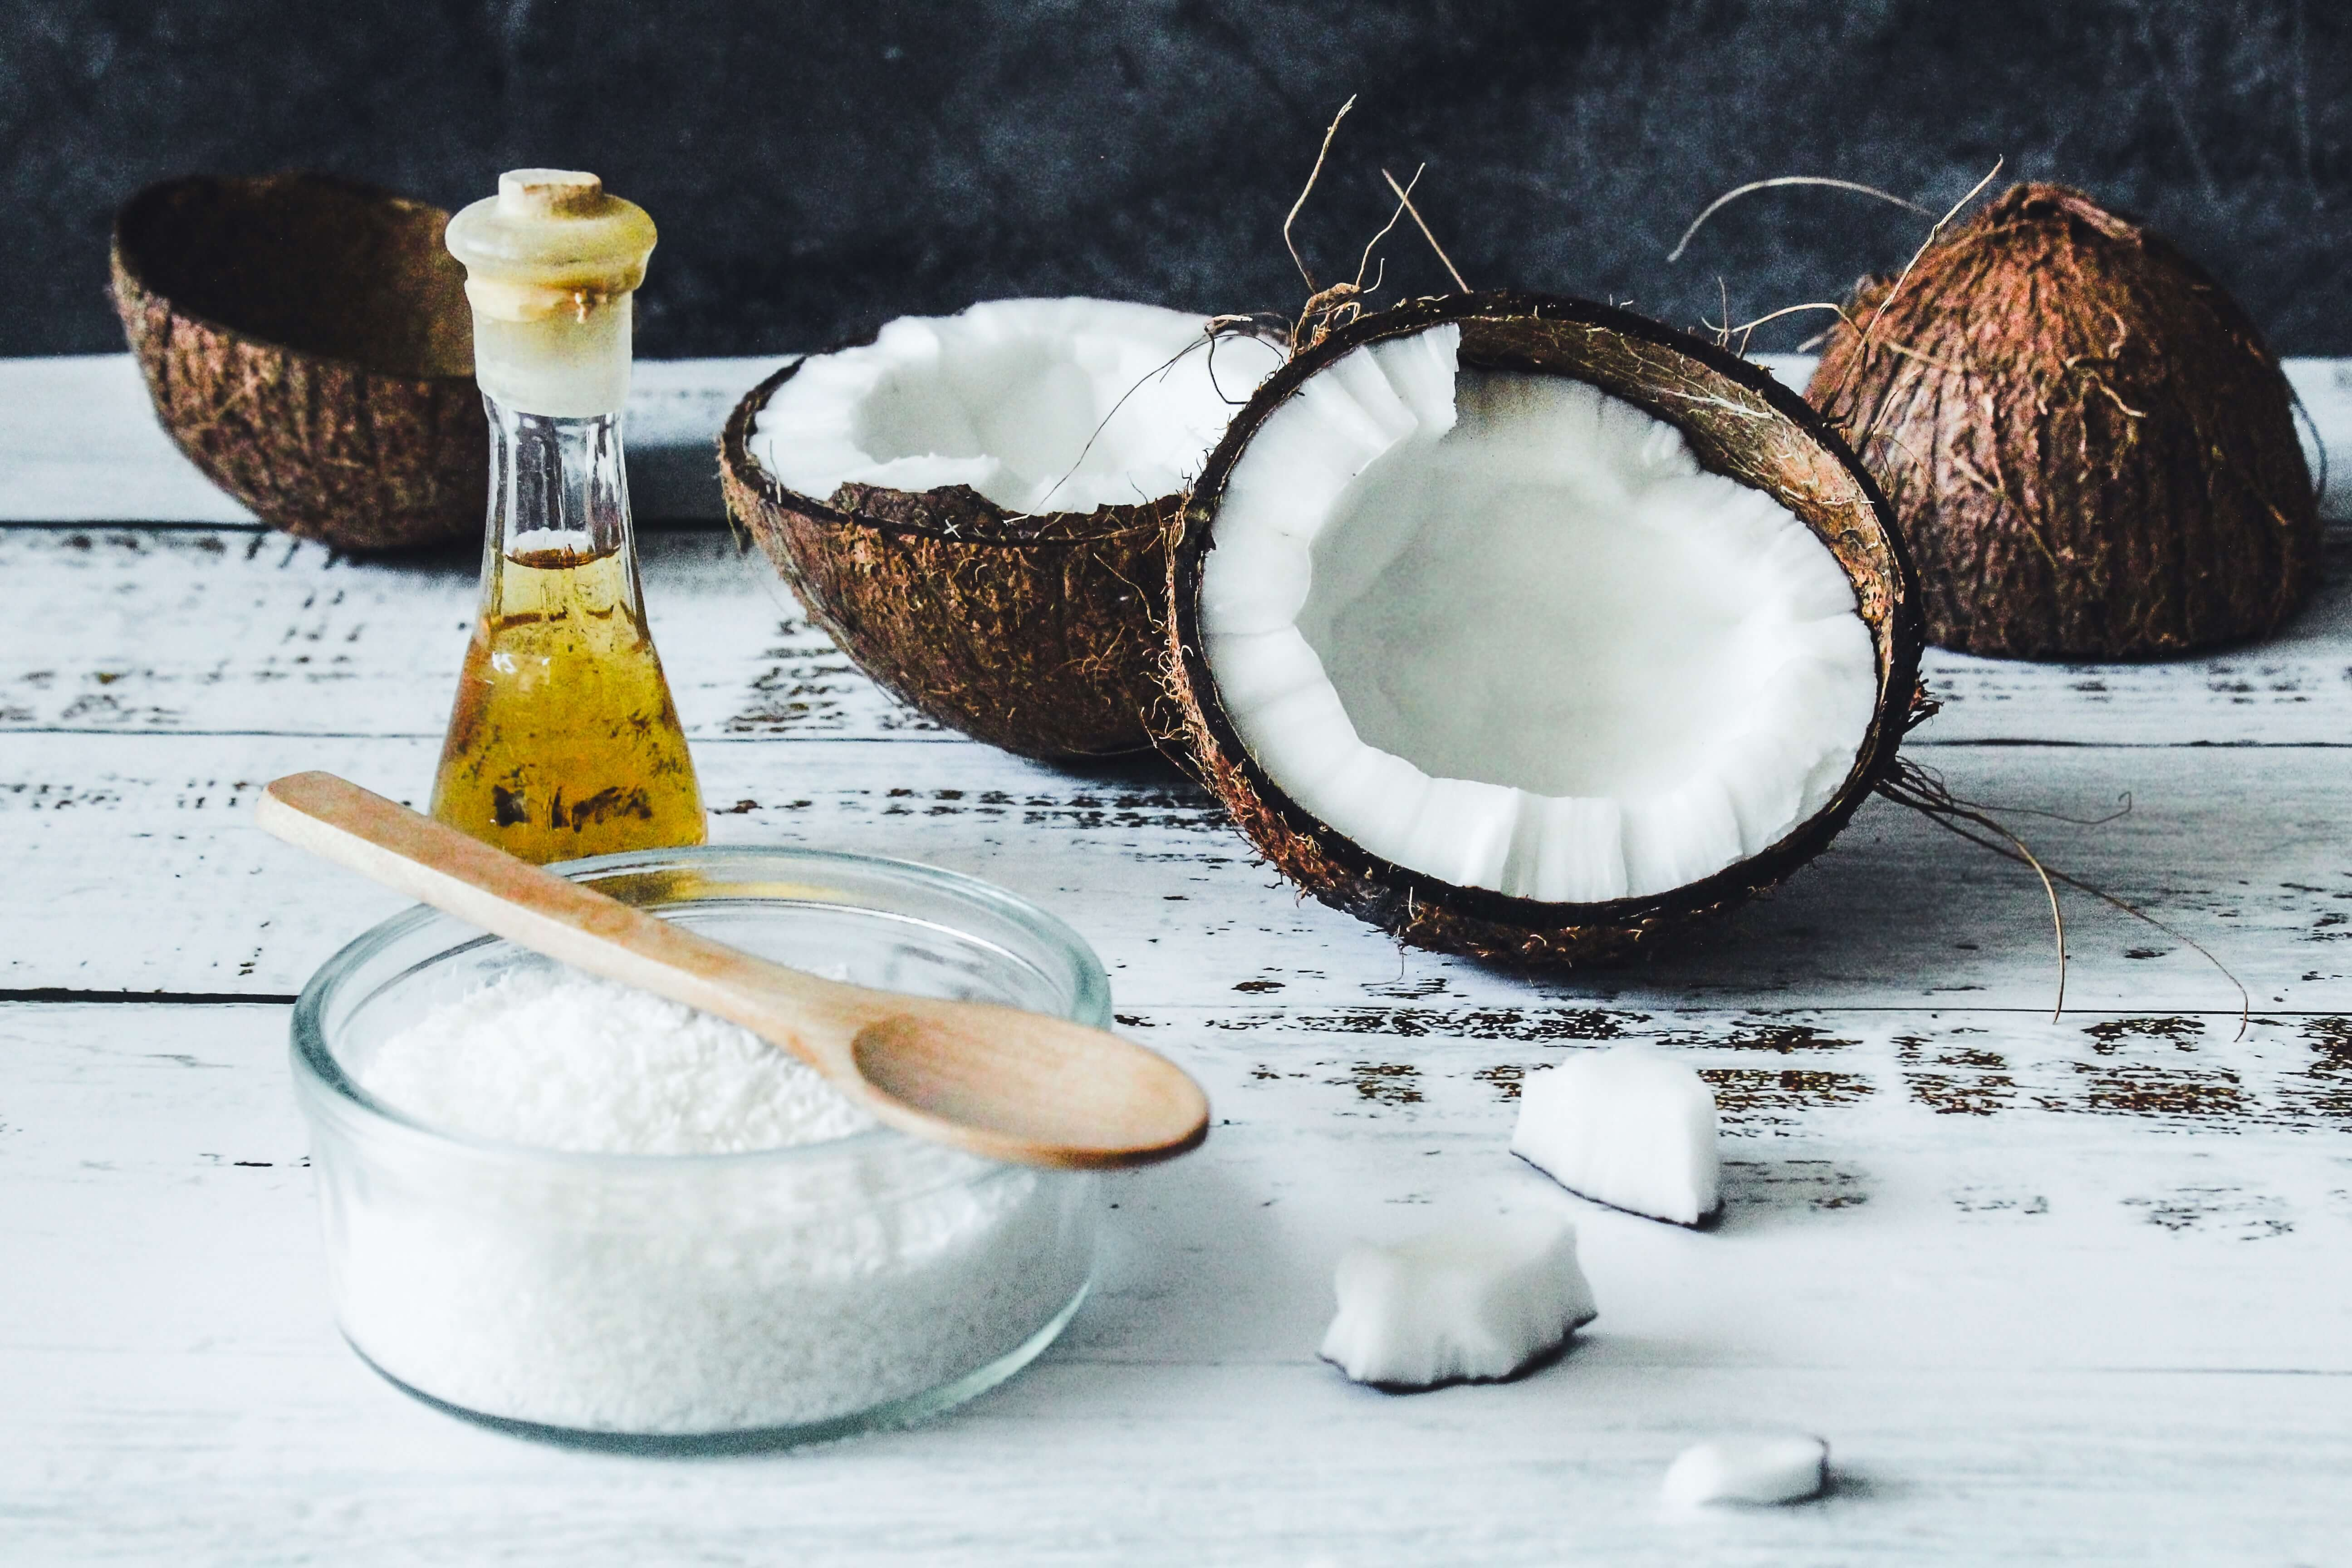 What Is Caprylic Acid And What Does It Do?